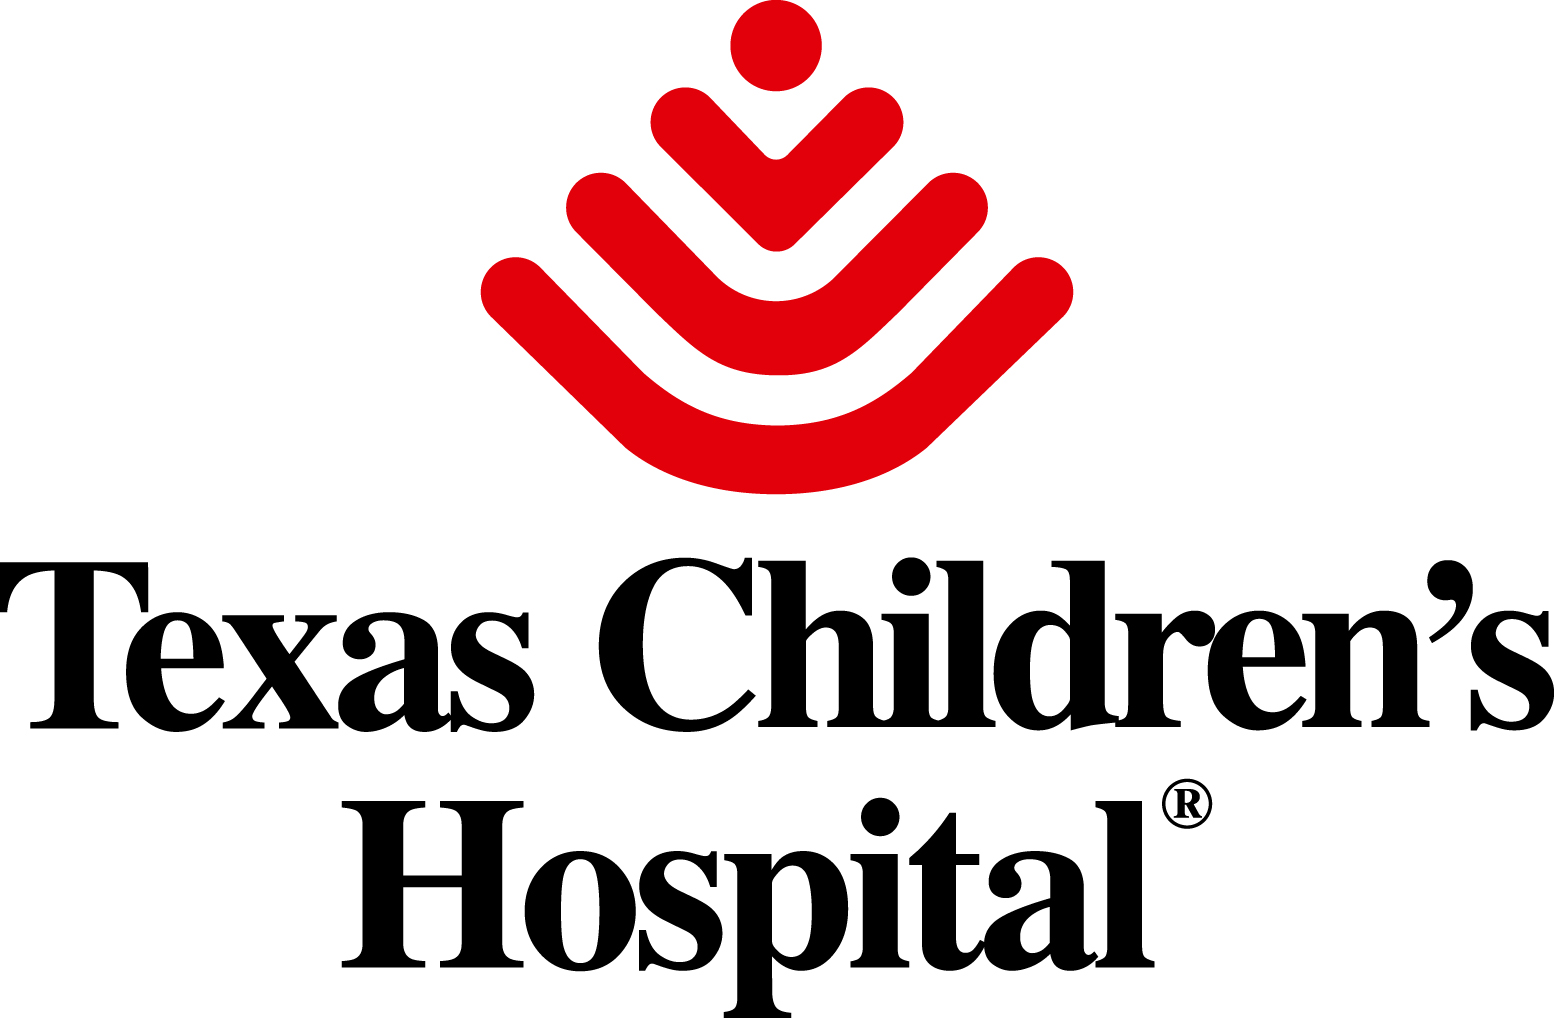 Texas Children's Hospital logo